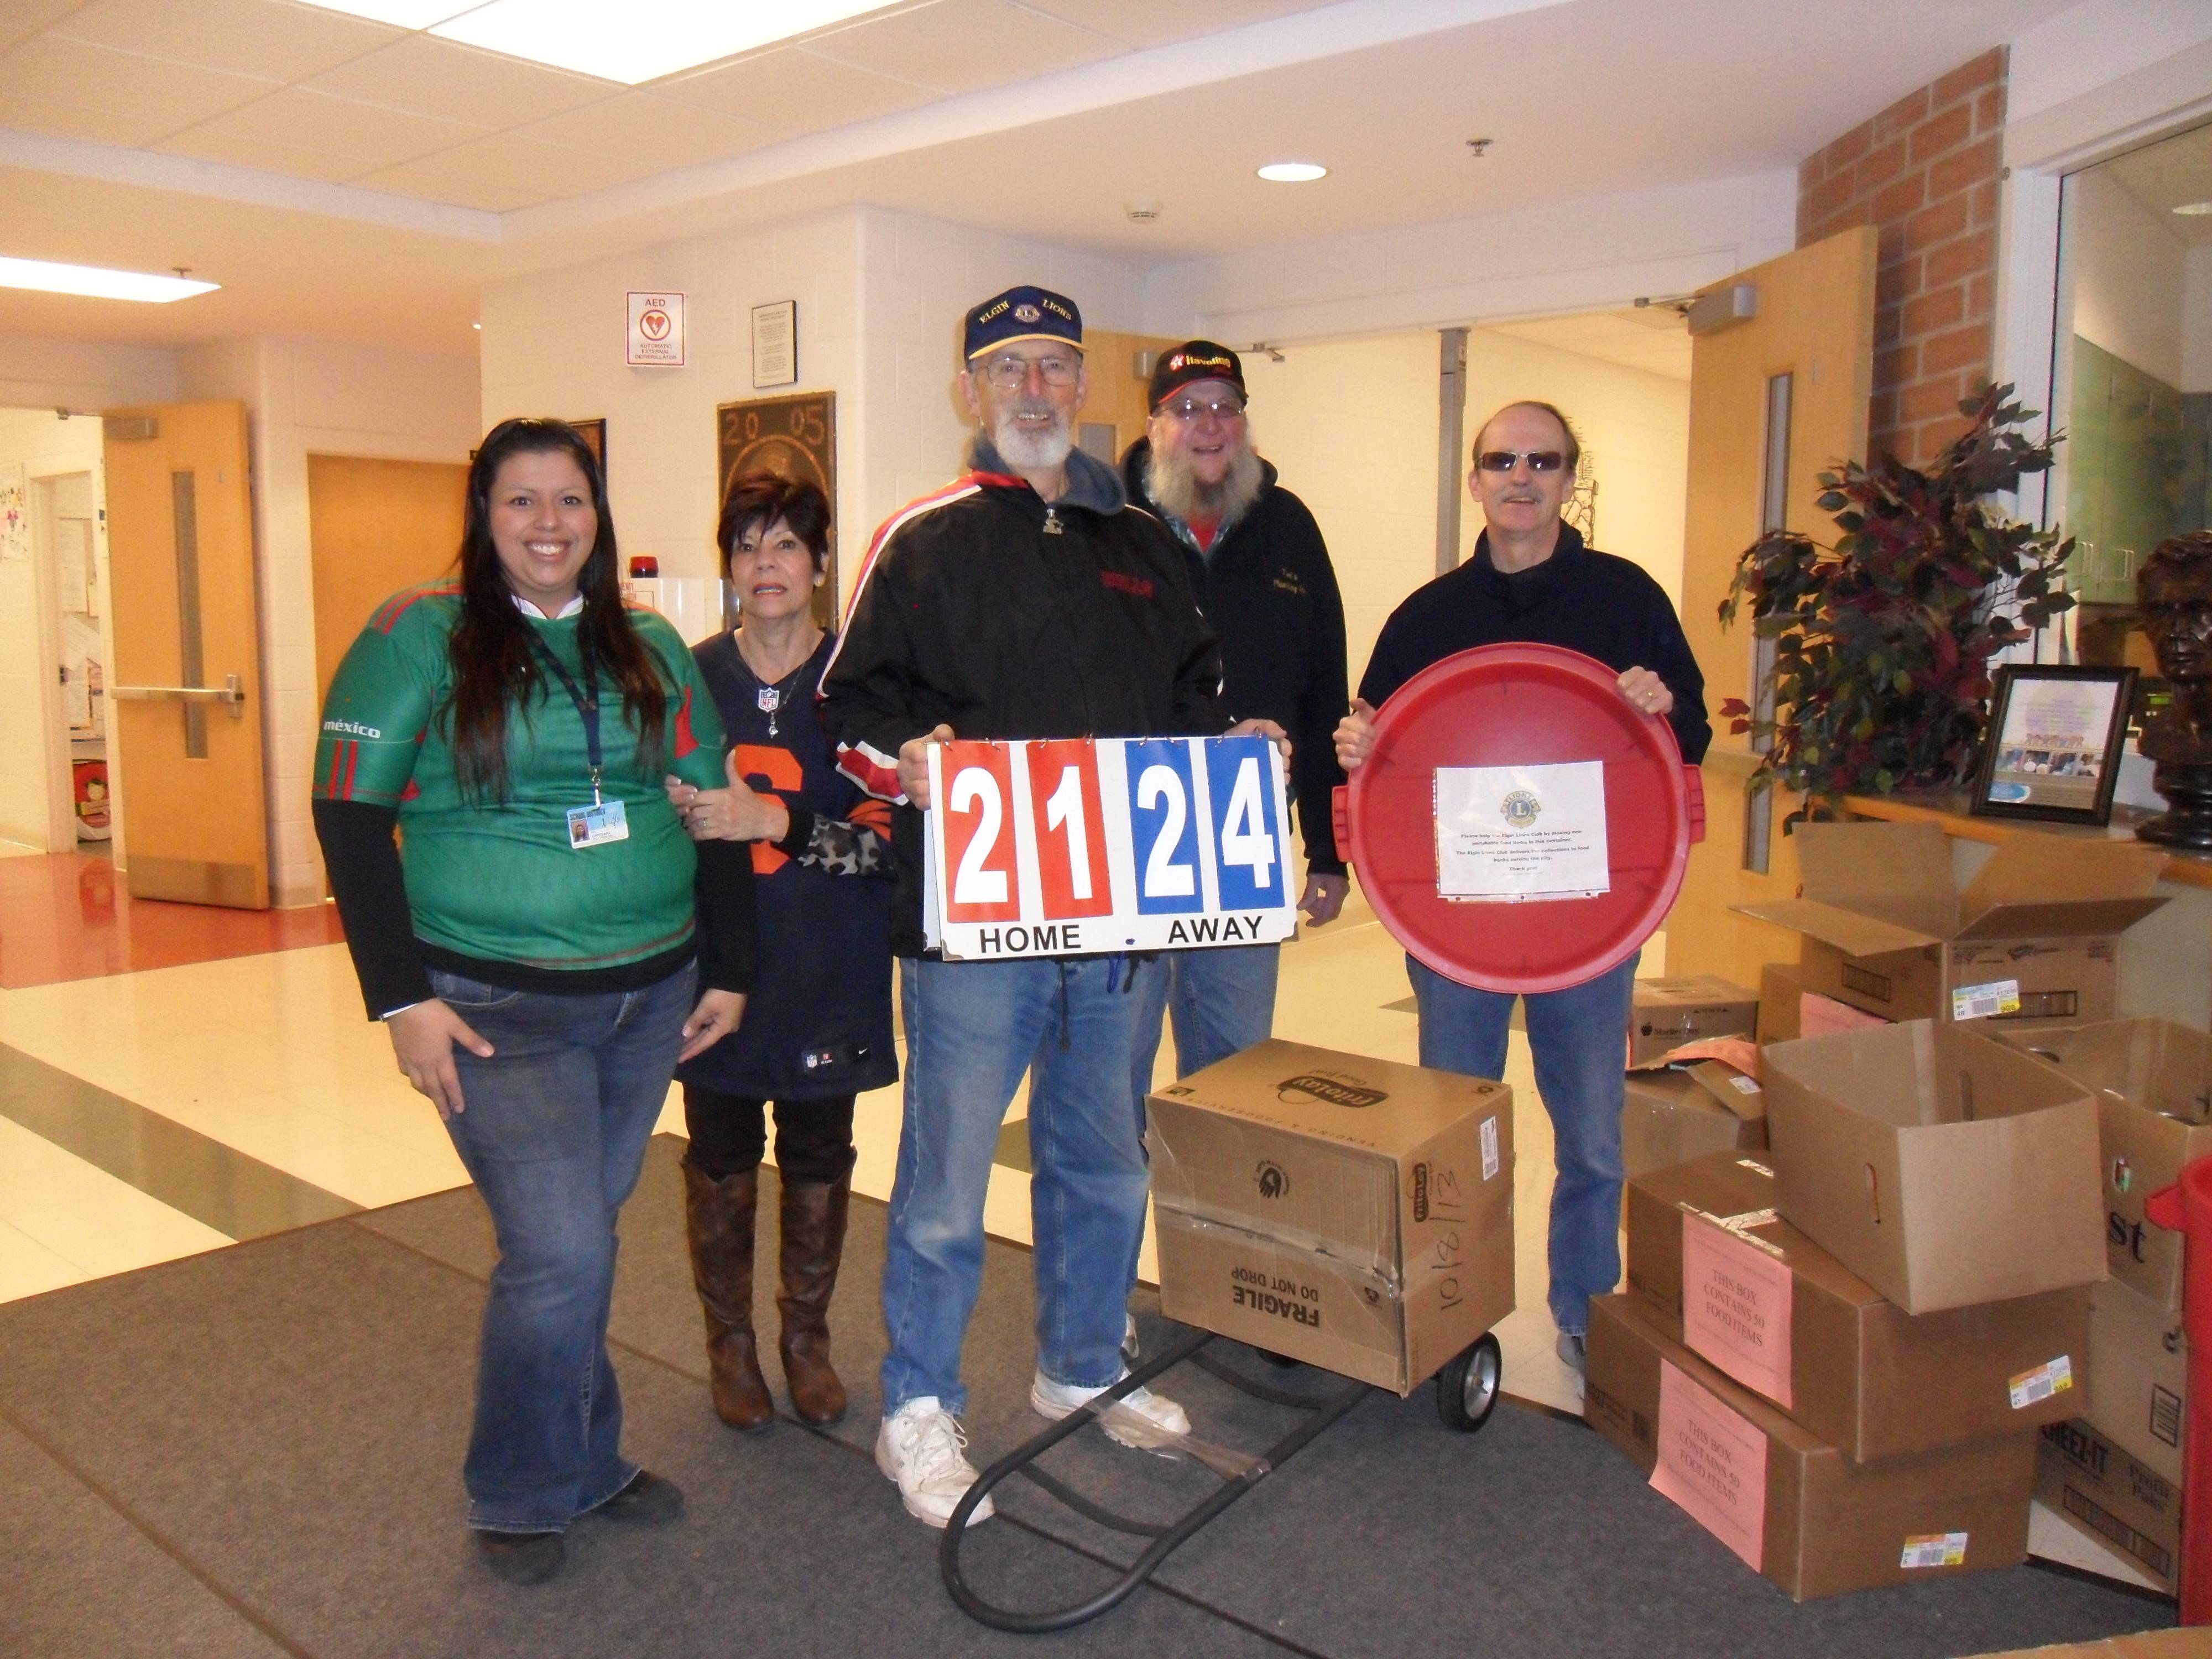 Lincoln Elementary produces record non-perishable food collection of 2,124 items. Pictured from left, Lisa Cardenas, assistant principal, Dr. Mariann Alyea, principal, Jim Beam, Tom Wahl, and Ed Bates. Not pictured, but helping, Karen Peterson, Ken Zehnder and Dick June.